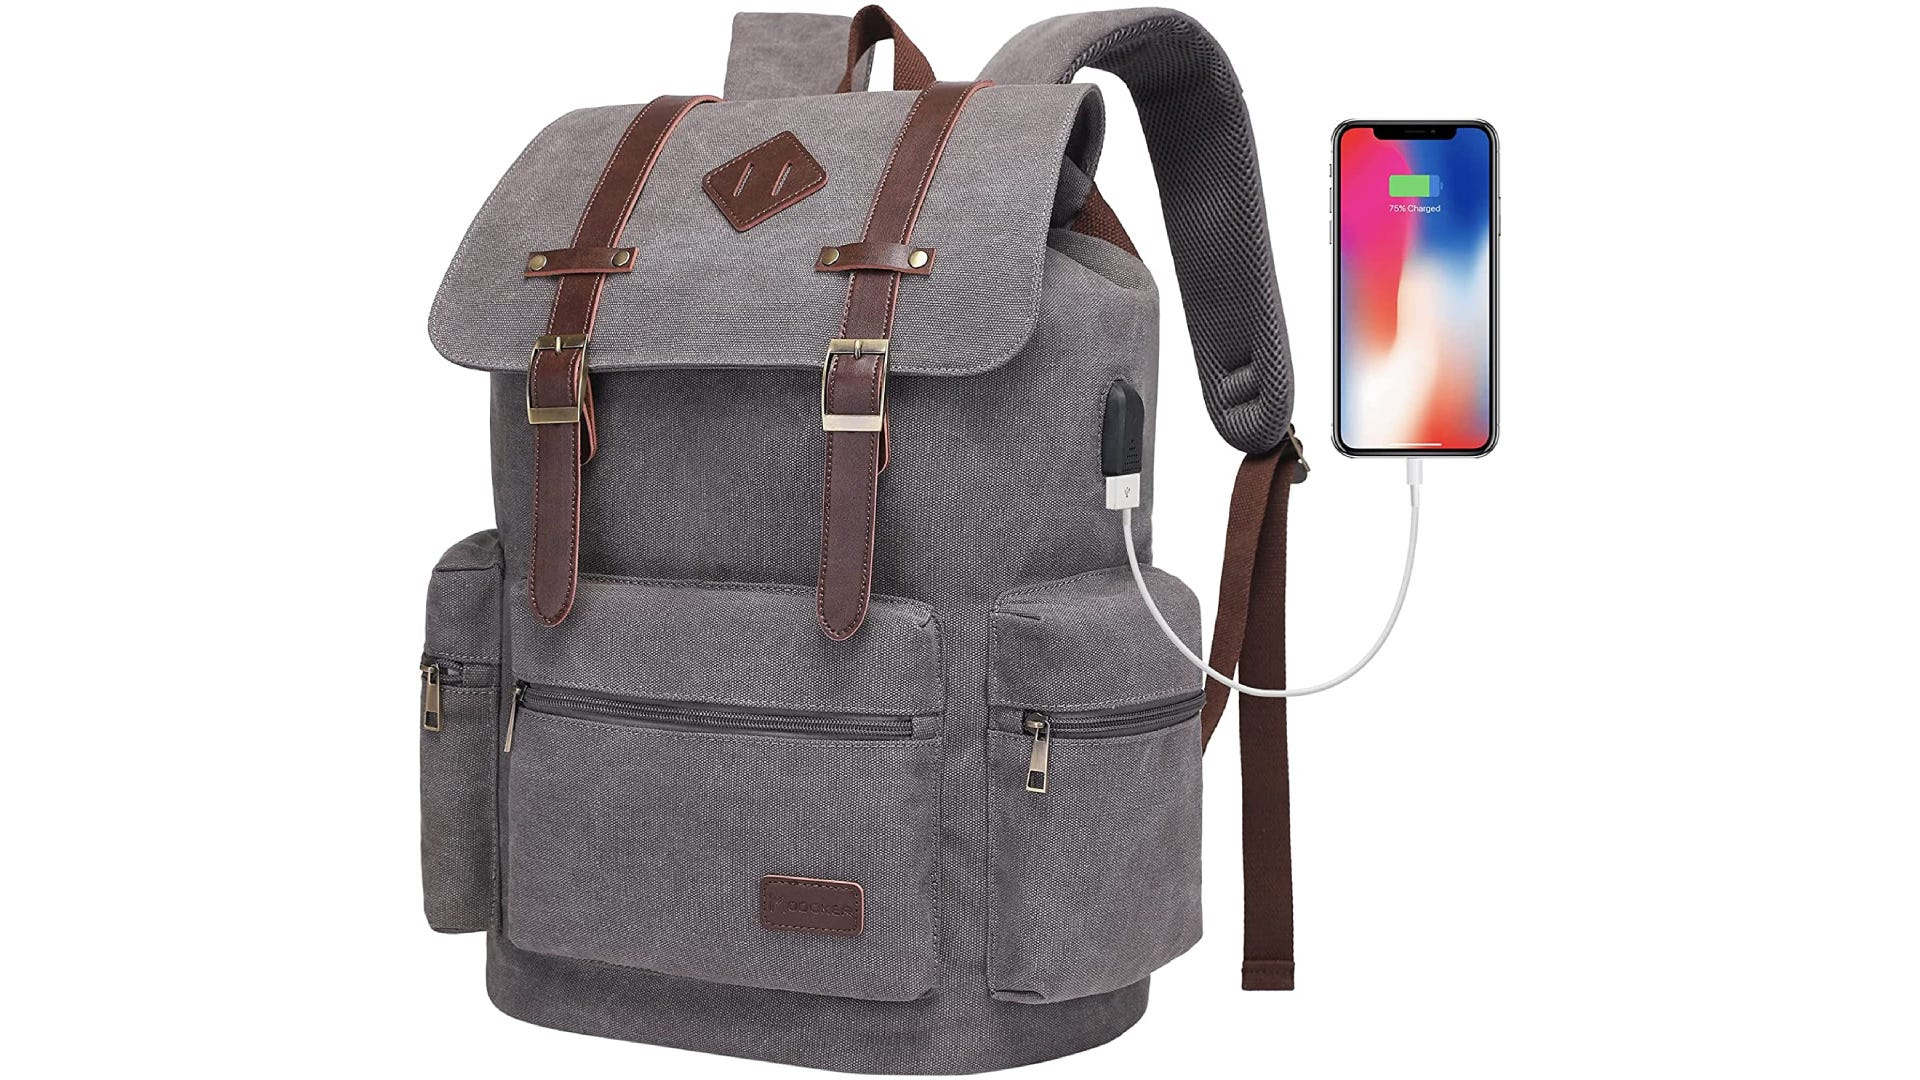 a gray backpack with leather straps, buckles, zippered outer pockets, and a phone plugged into a charger